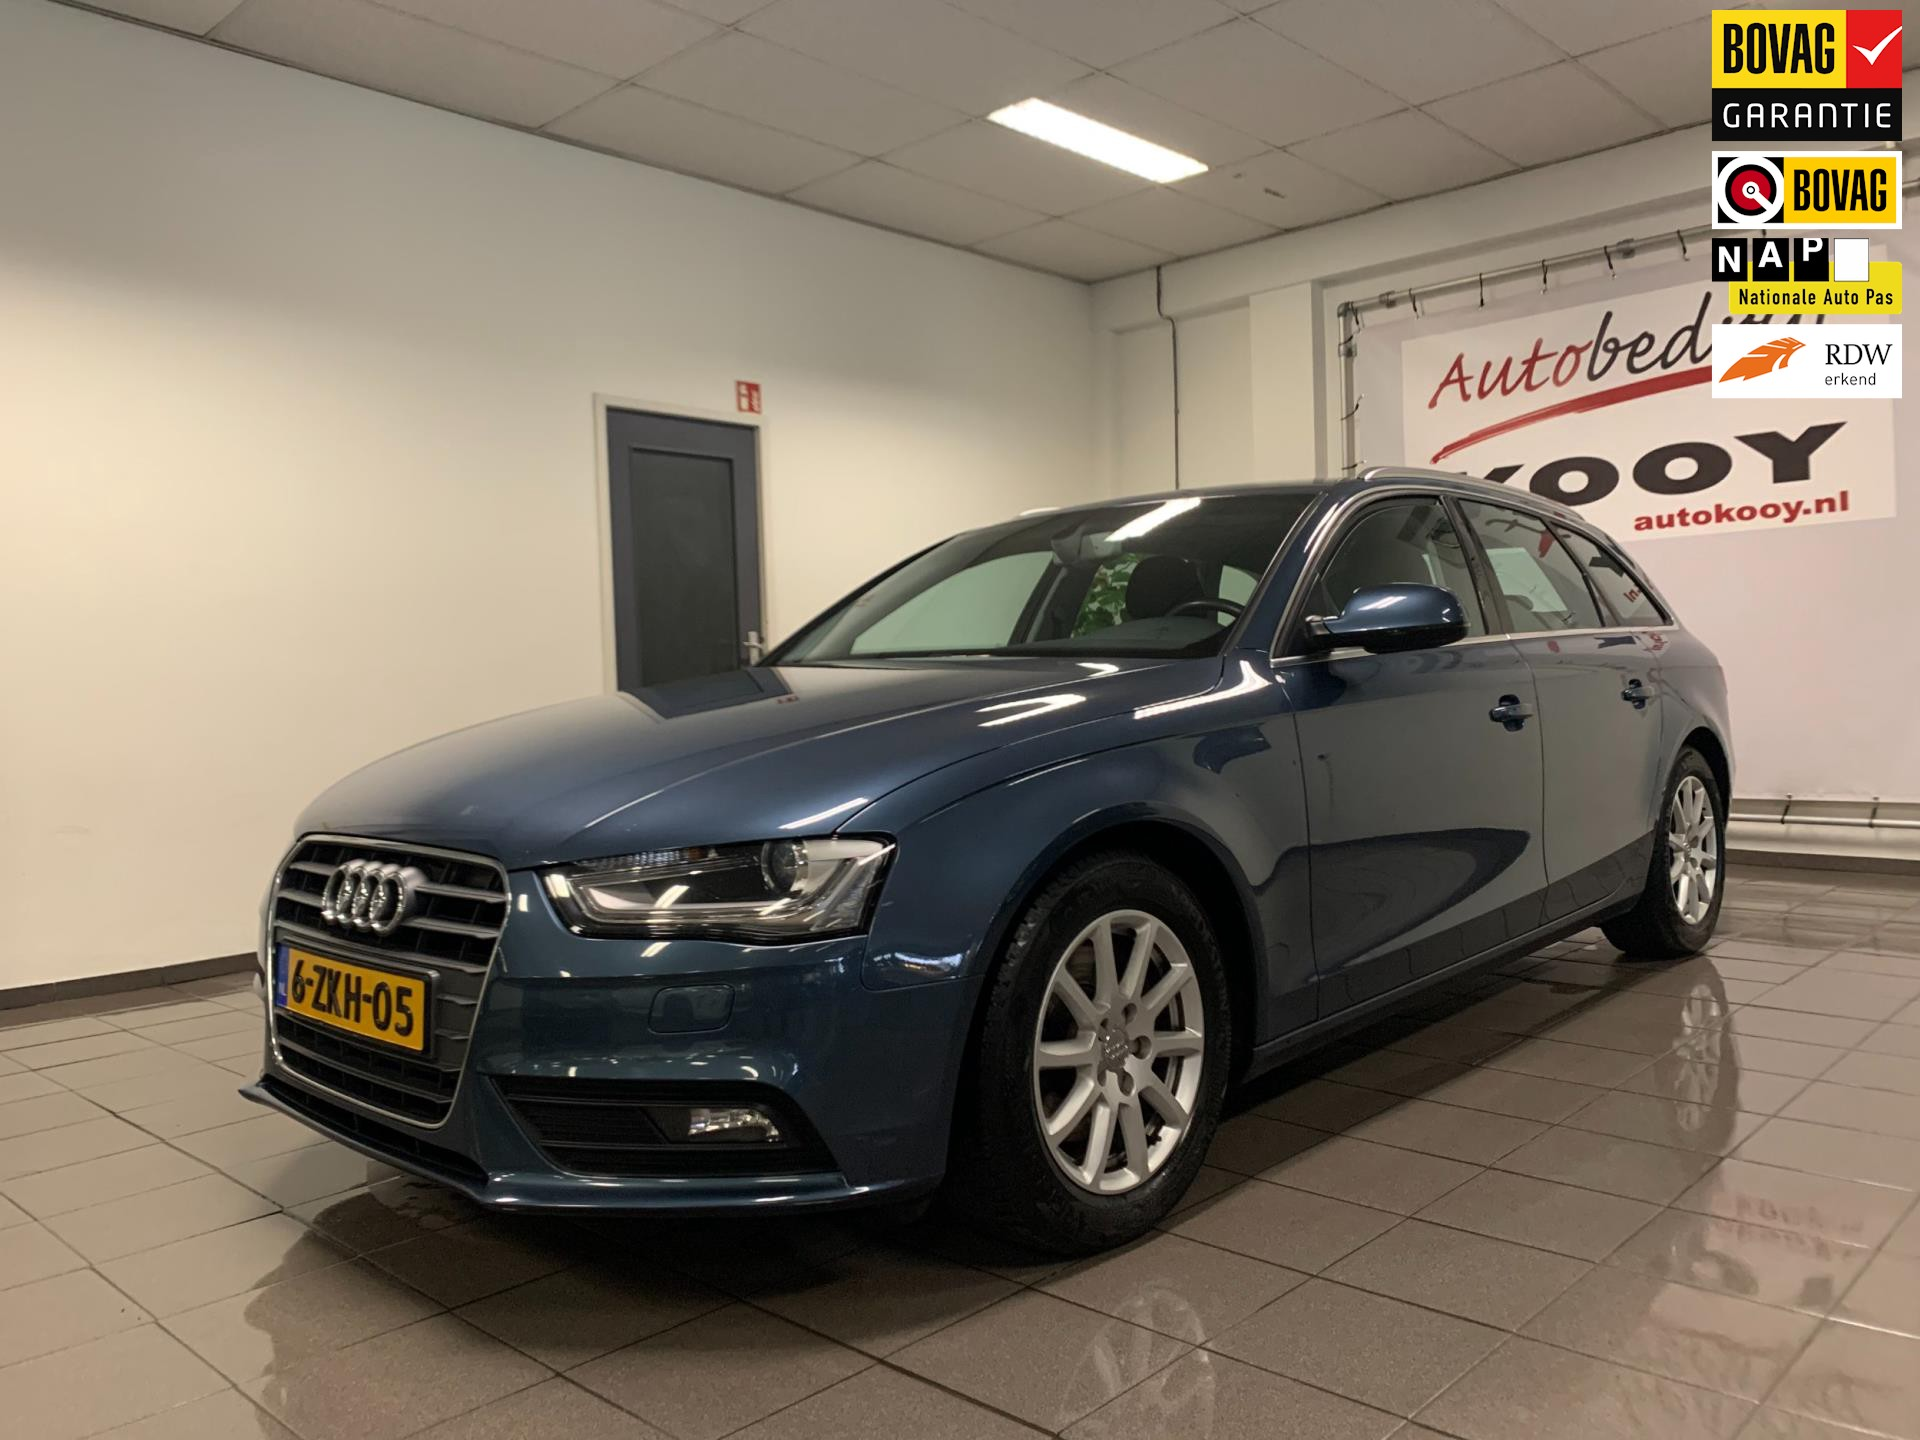 Audi A4 Avant 2.0 TDI ultra Business Edition * Dealer onderhouden / Xenon / LED / NL Auto *